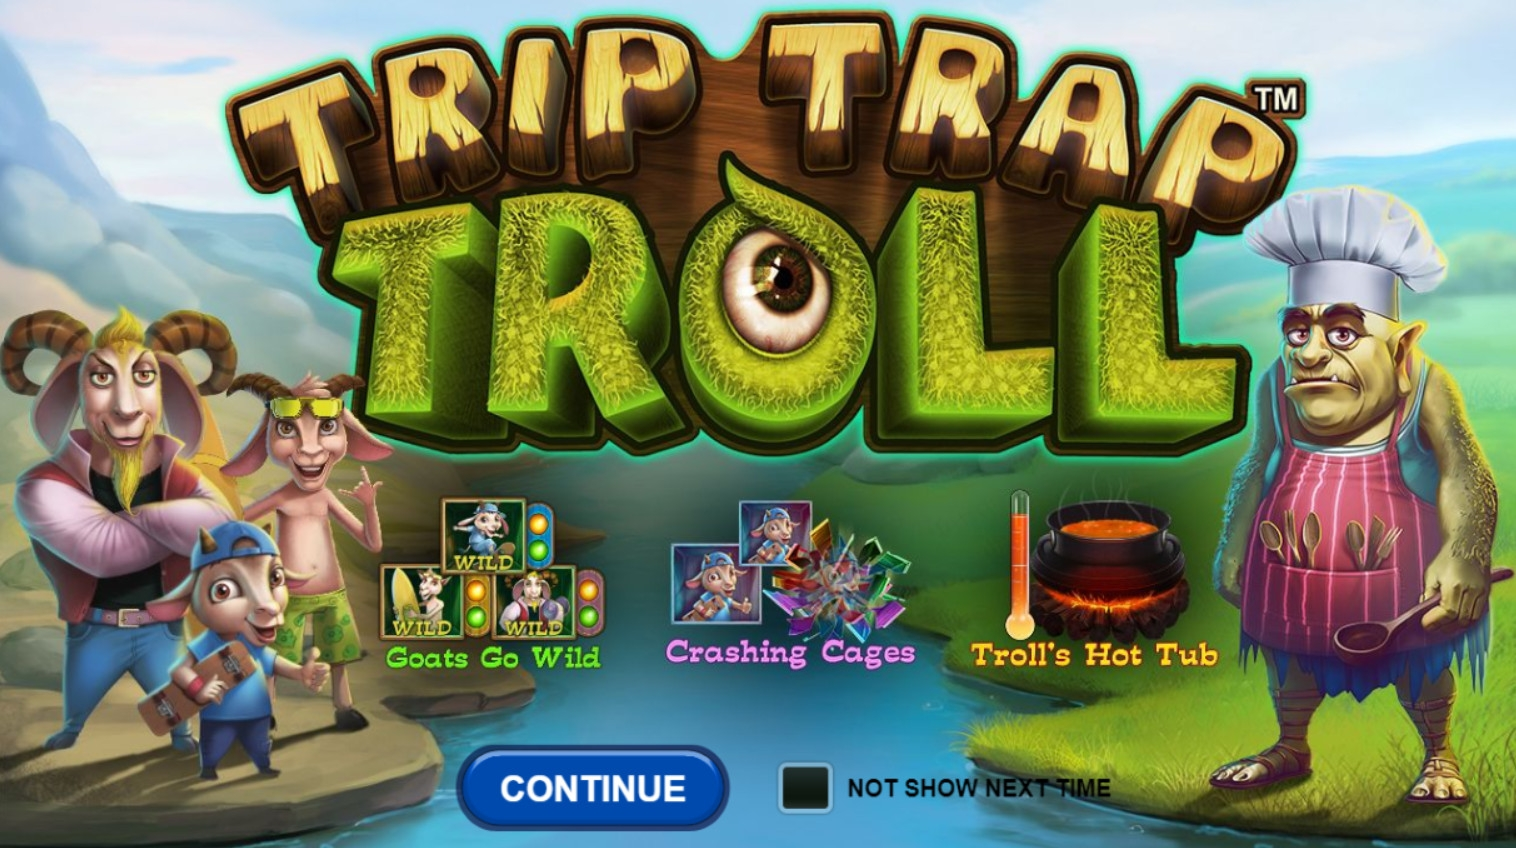 Trip Trap Troll video slot